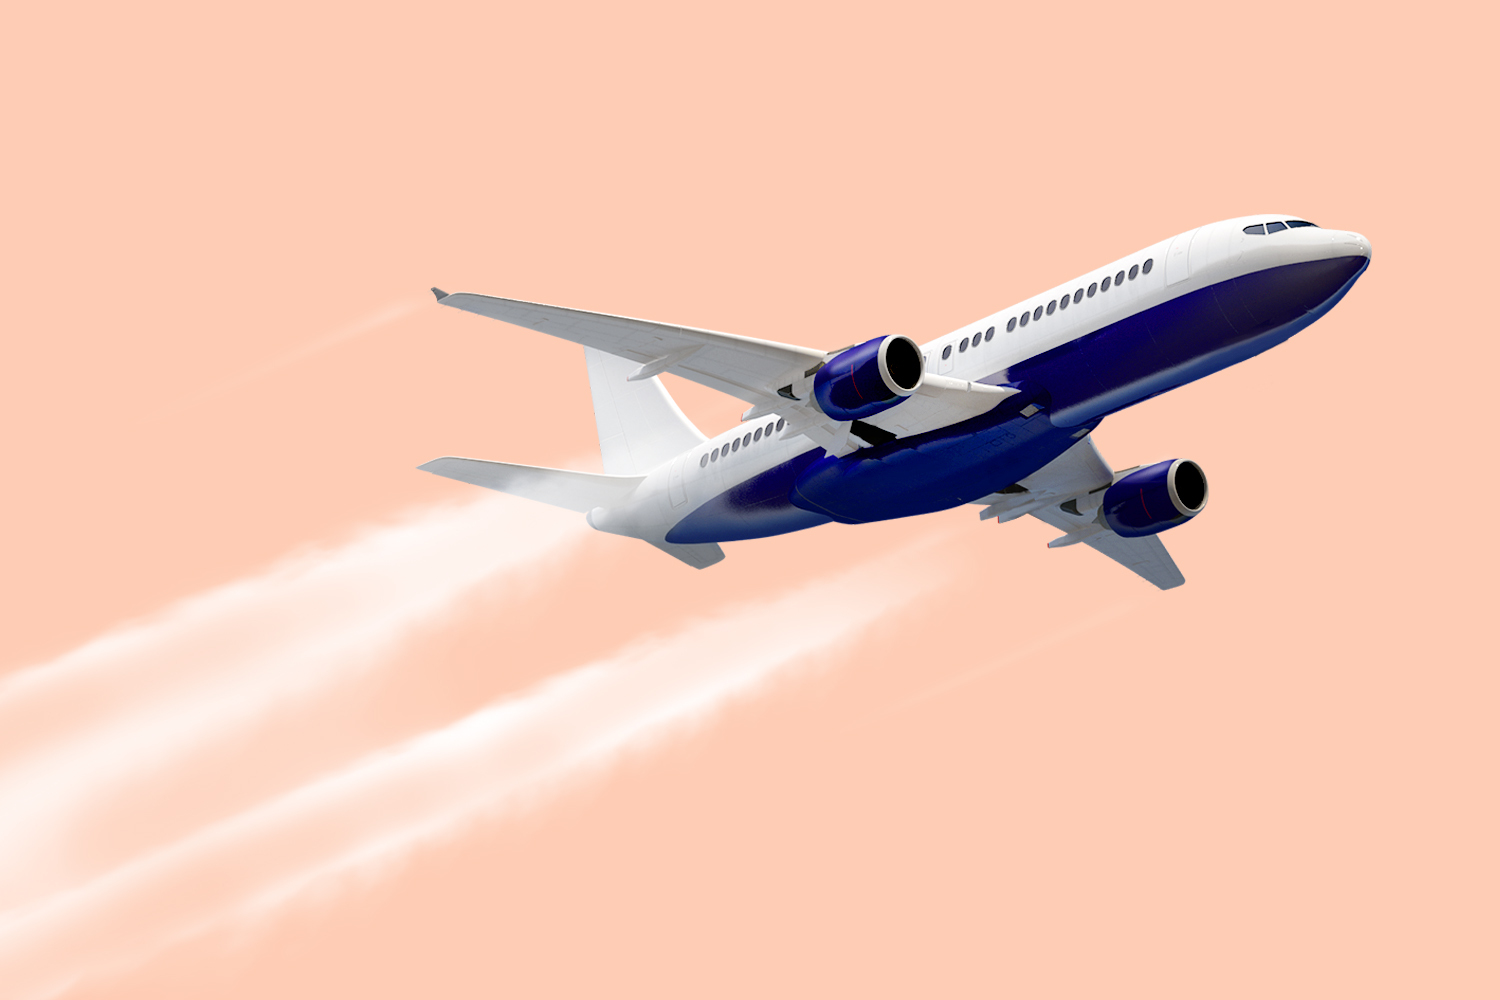 Boeing Lags Behind Airbus for Second Year Running